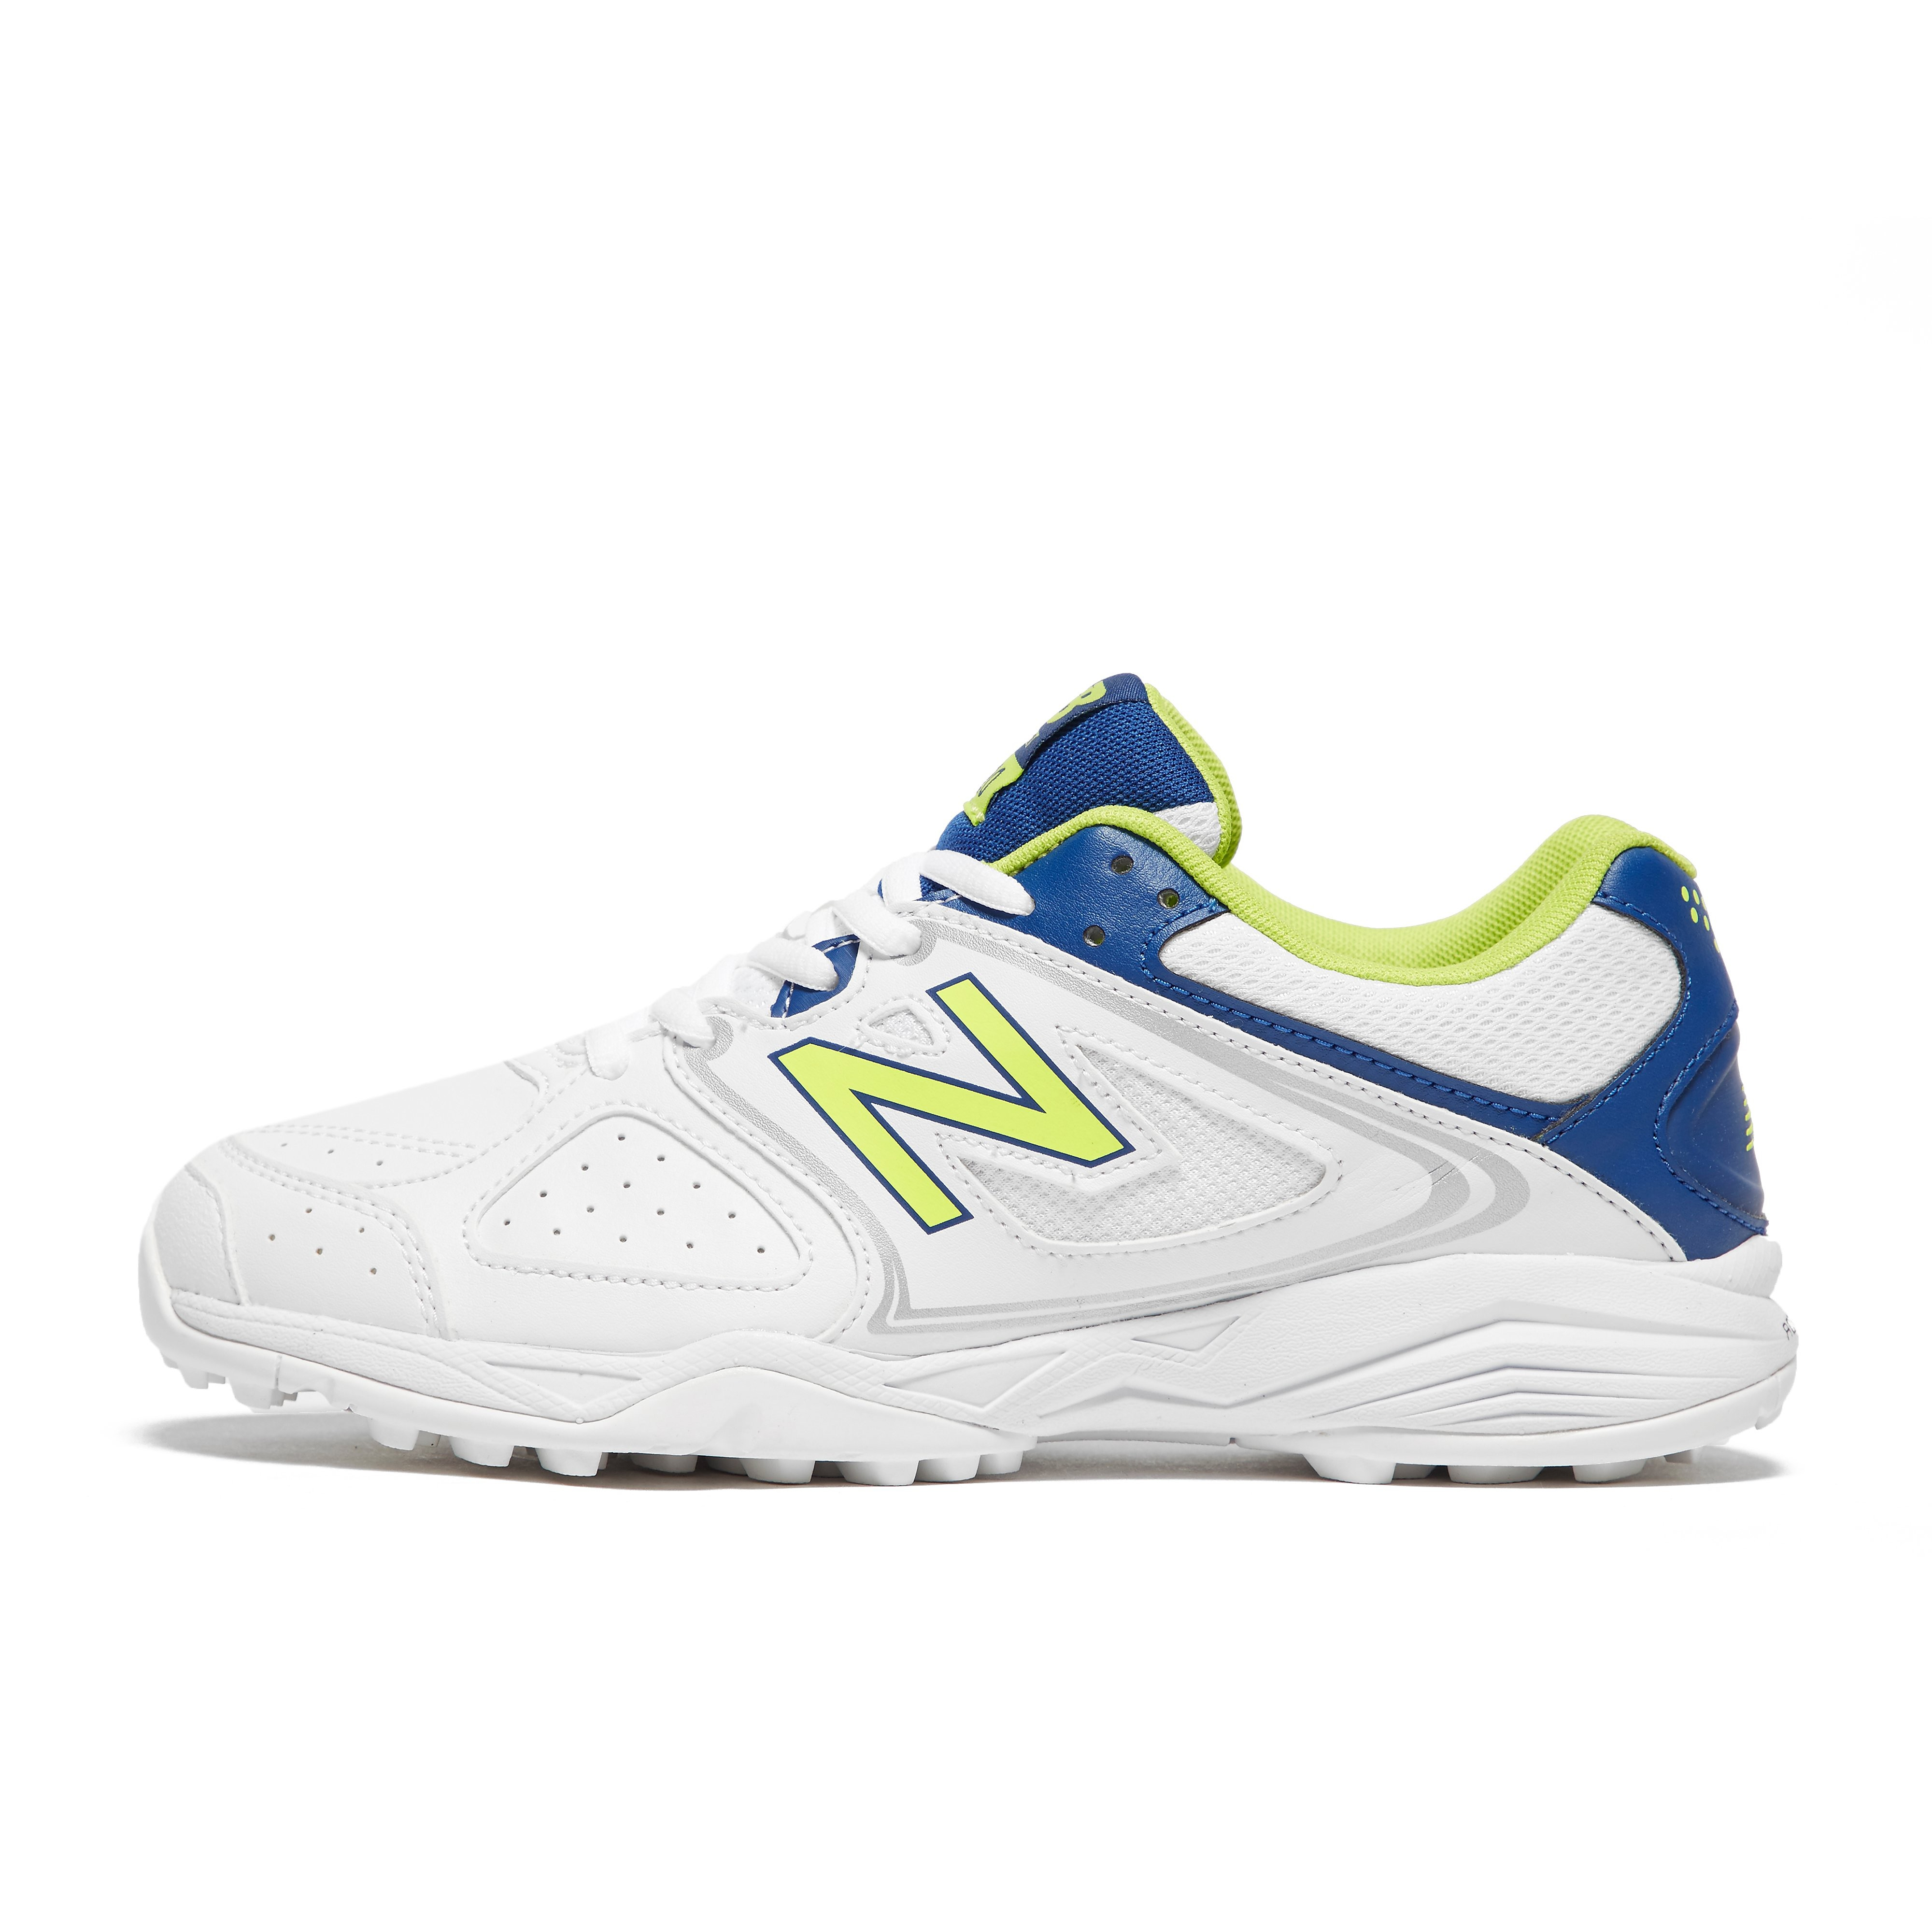 New Balance CK4020 Junior Cricket Shoes